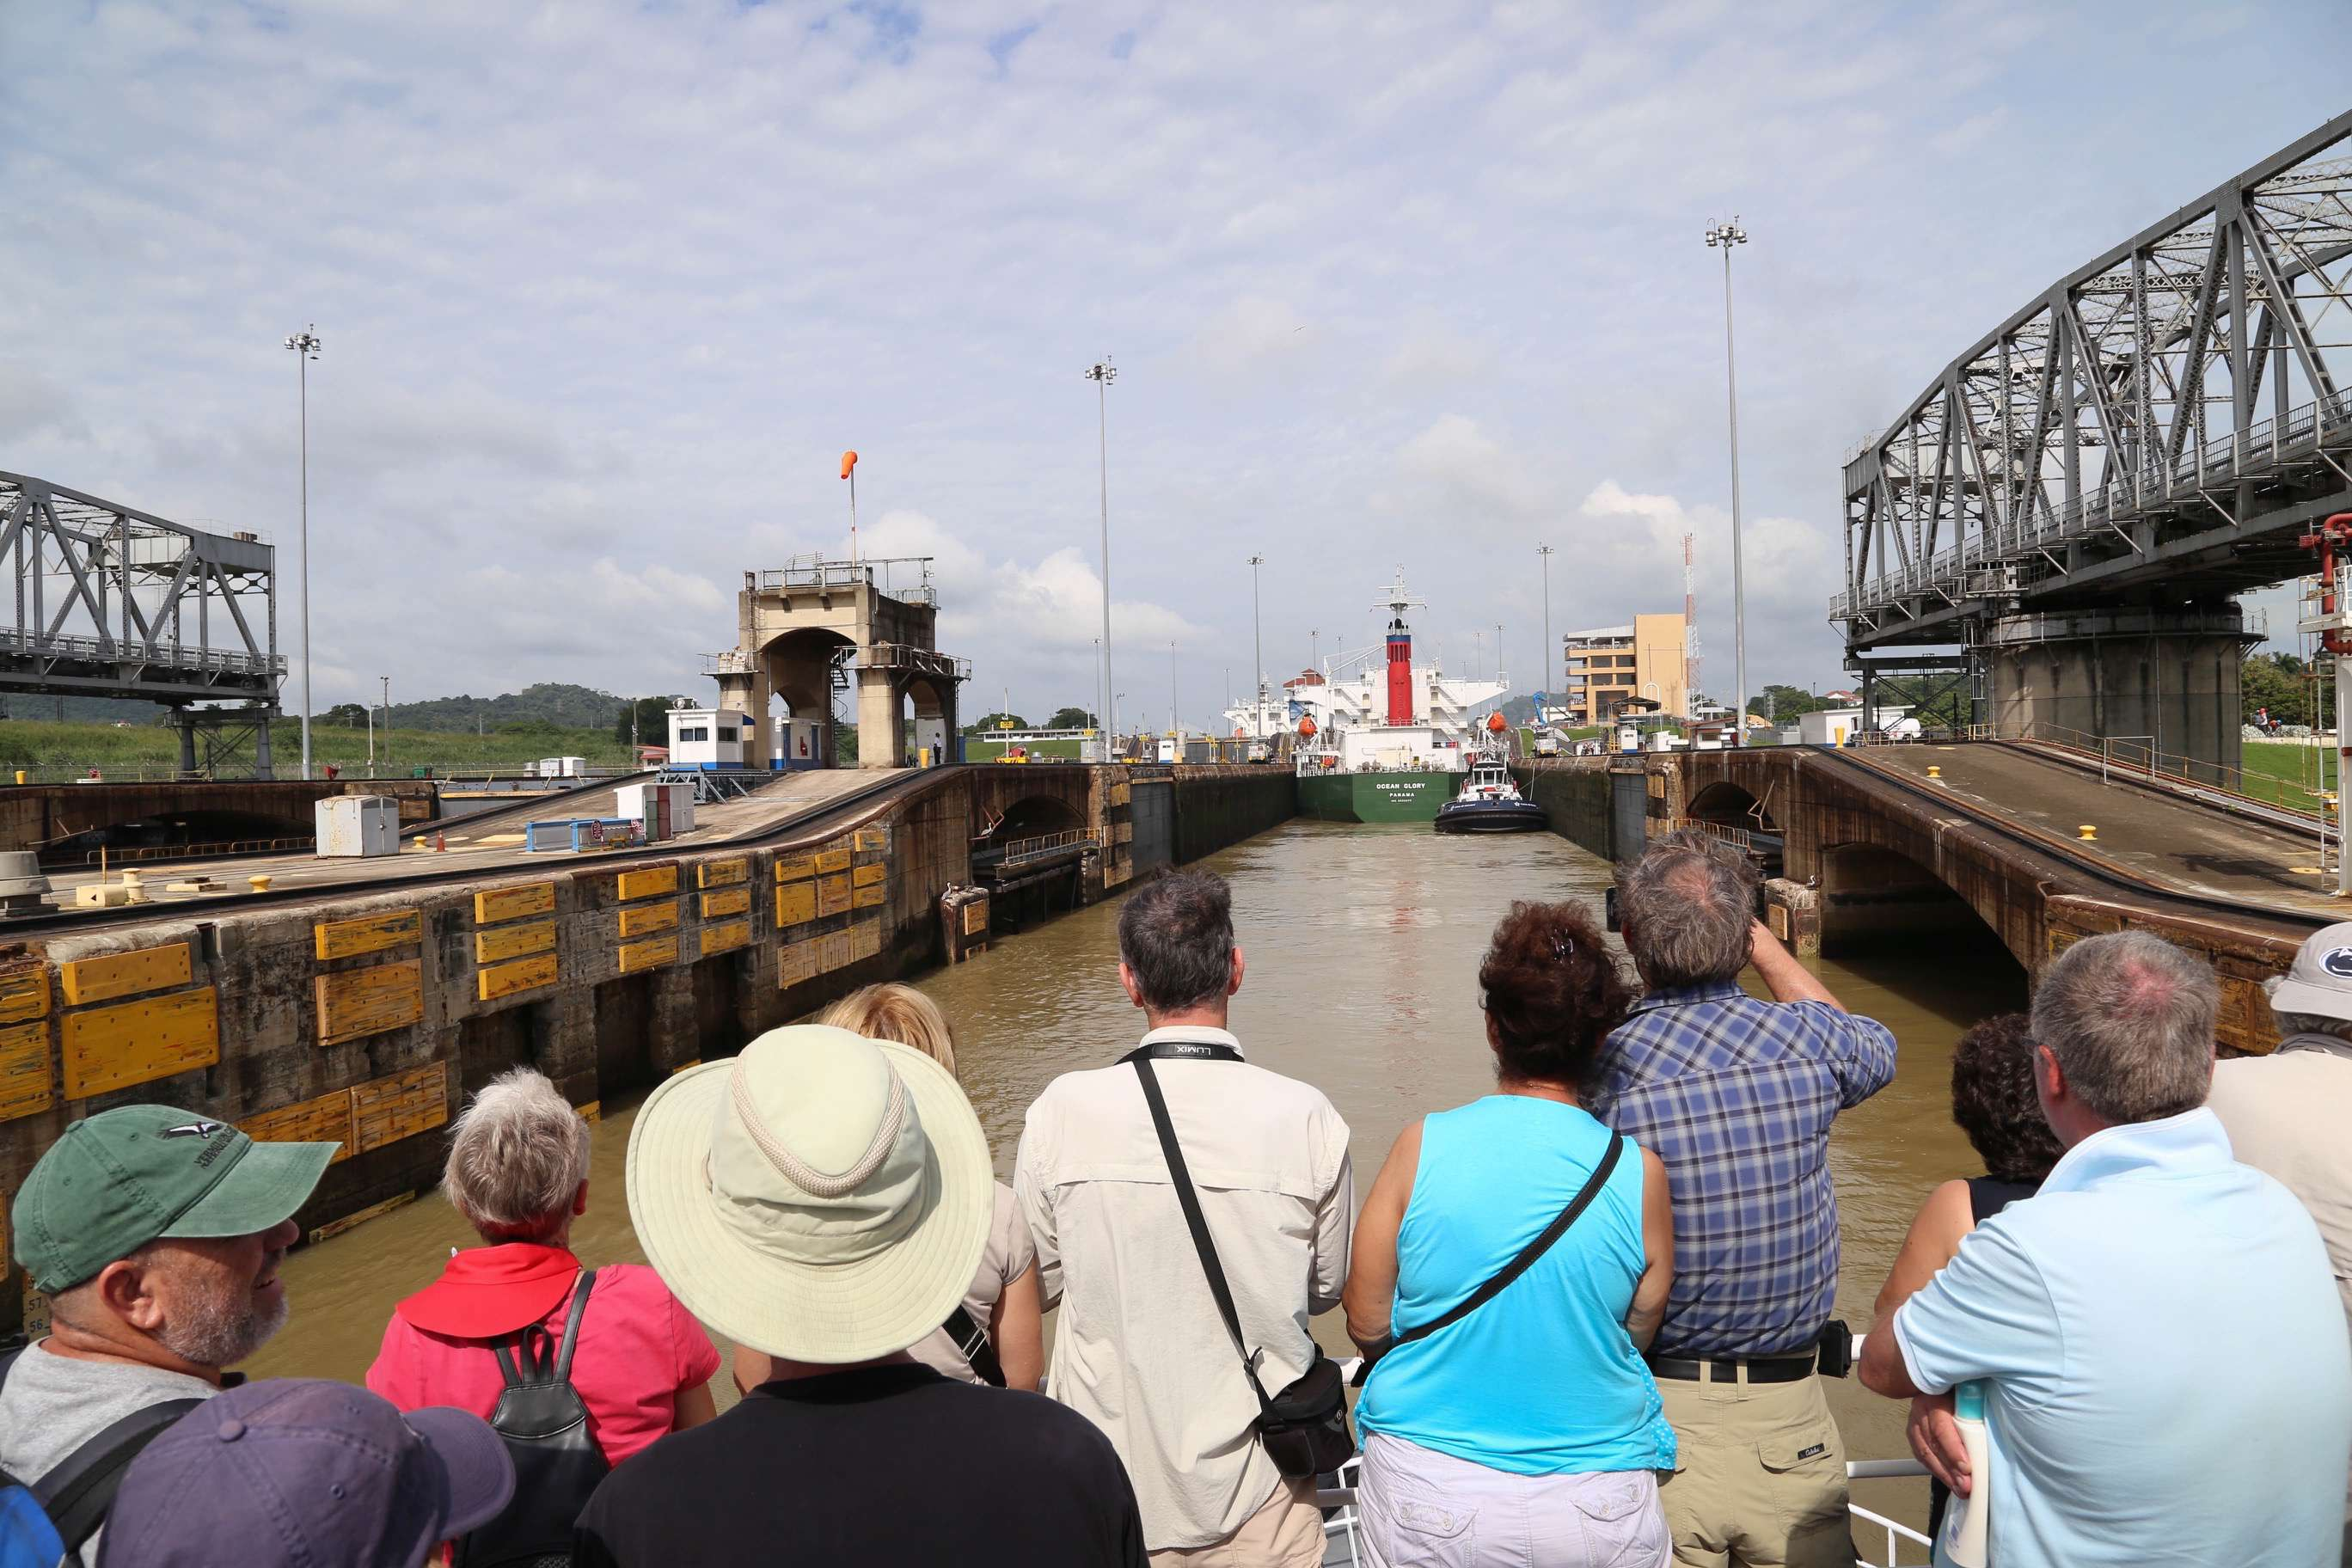 The Panama Canal is truly a marvel of engineering and visitors from around the world visit to see the canal at work.